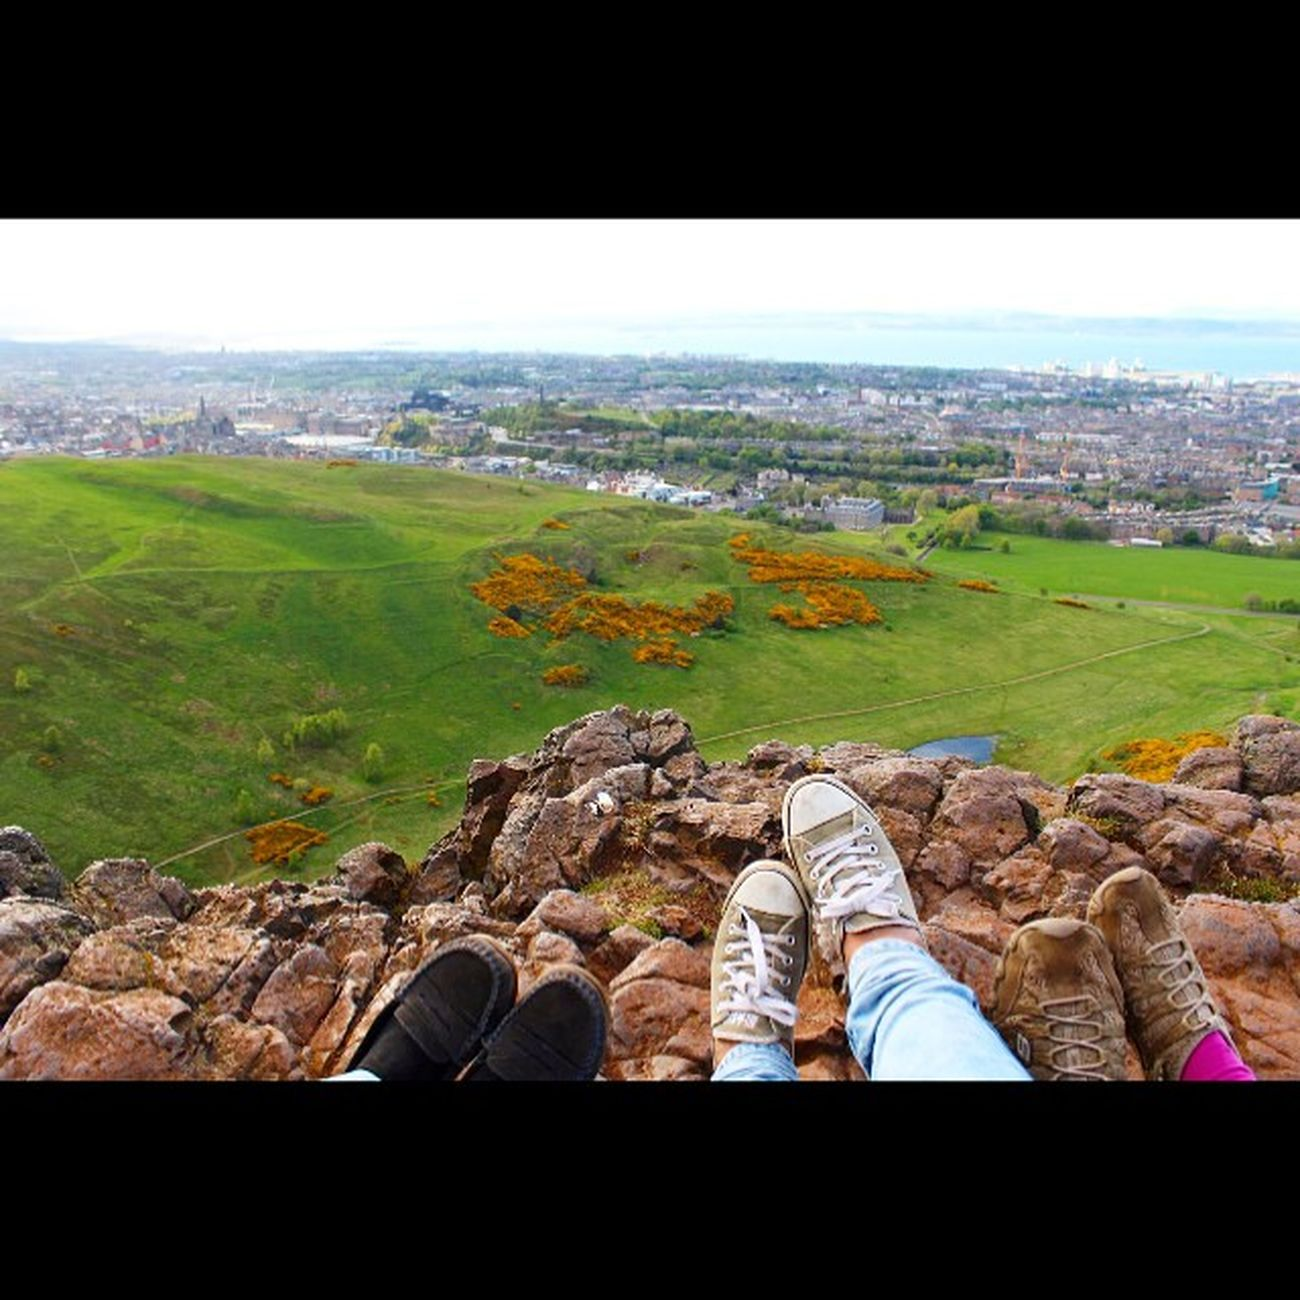 Friends Beautiful Happy Landscape Family Holiday Climb Fromwhereistand Scotland Arthur Edinburgh Mountain Photooftheday Picoftheday Hills Instagood Instadaily Instalike Converses Likesreturned